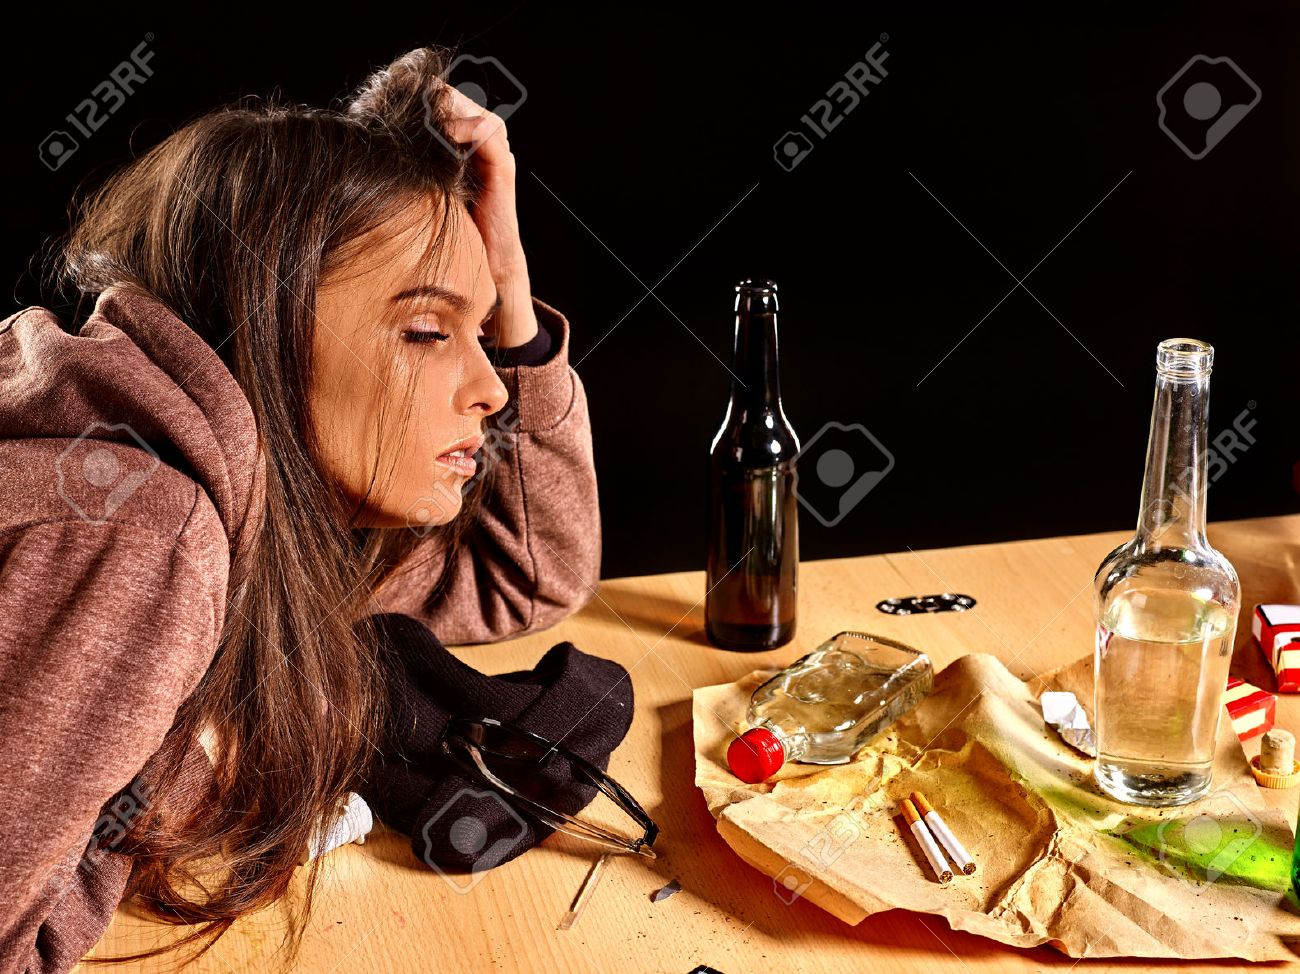 Girl in depression drinking alcohol and smokes cigarettes in solitude at the table. - 46947924